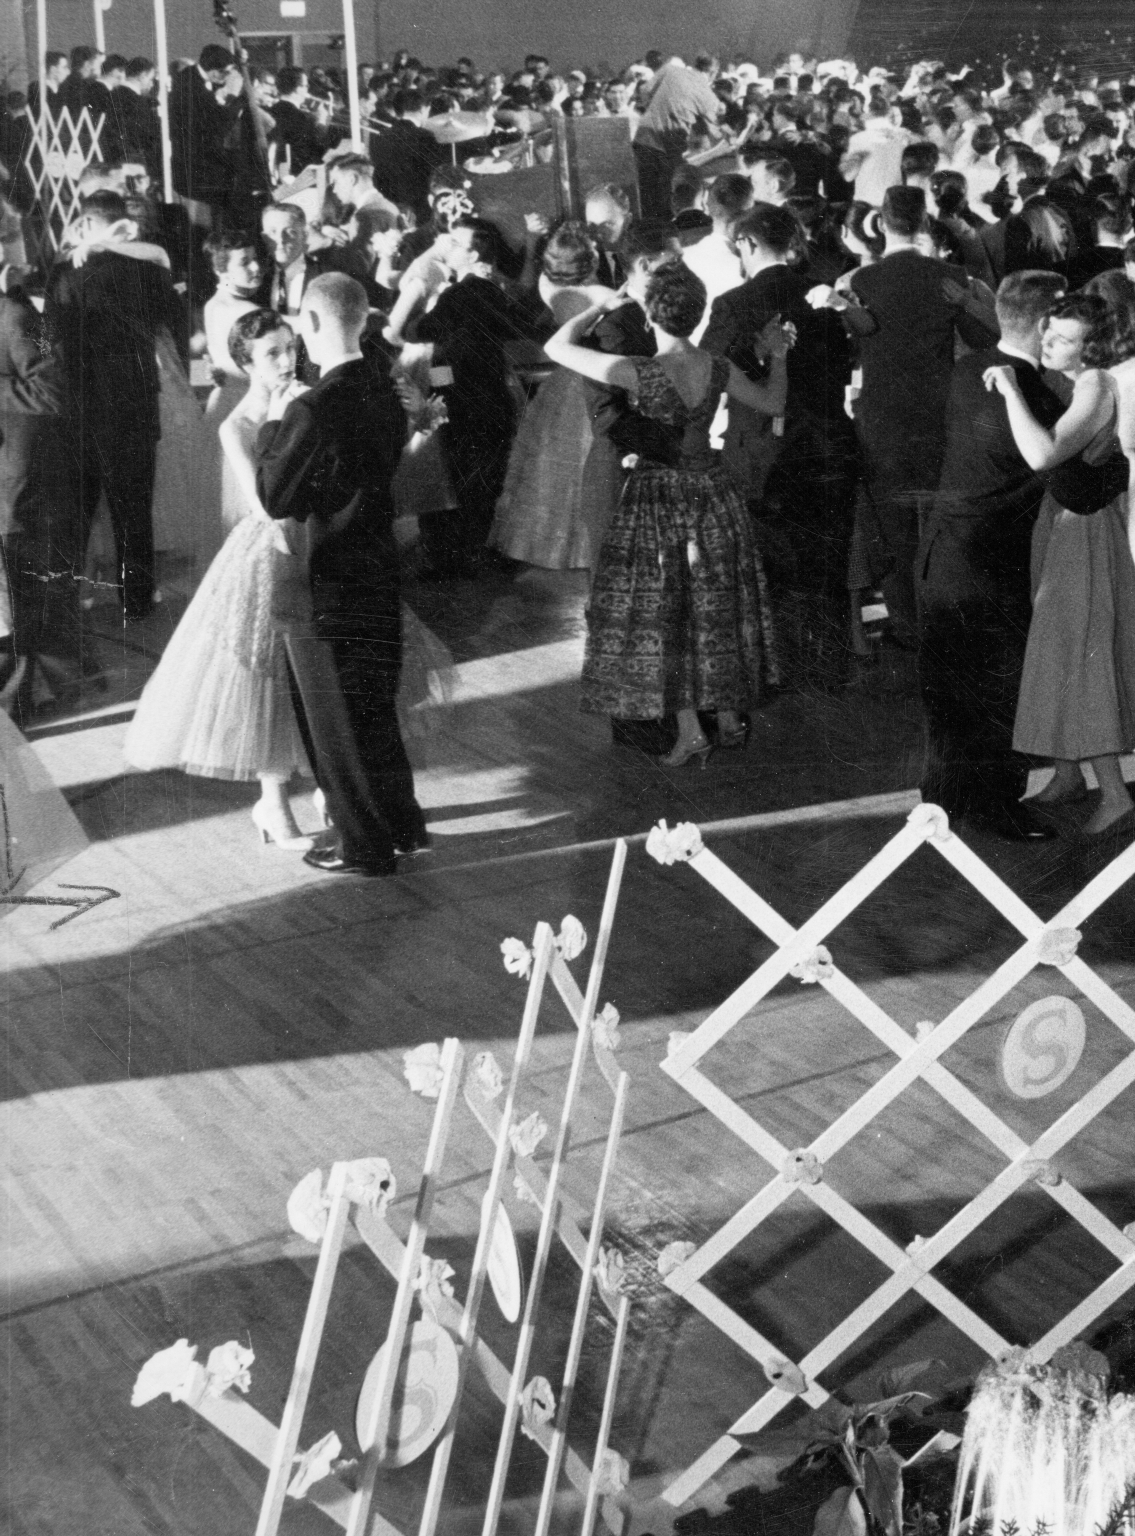 Downtown Campus, Formal Dance